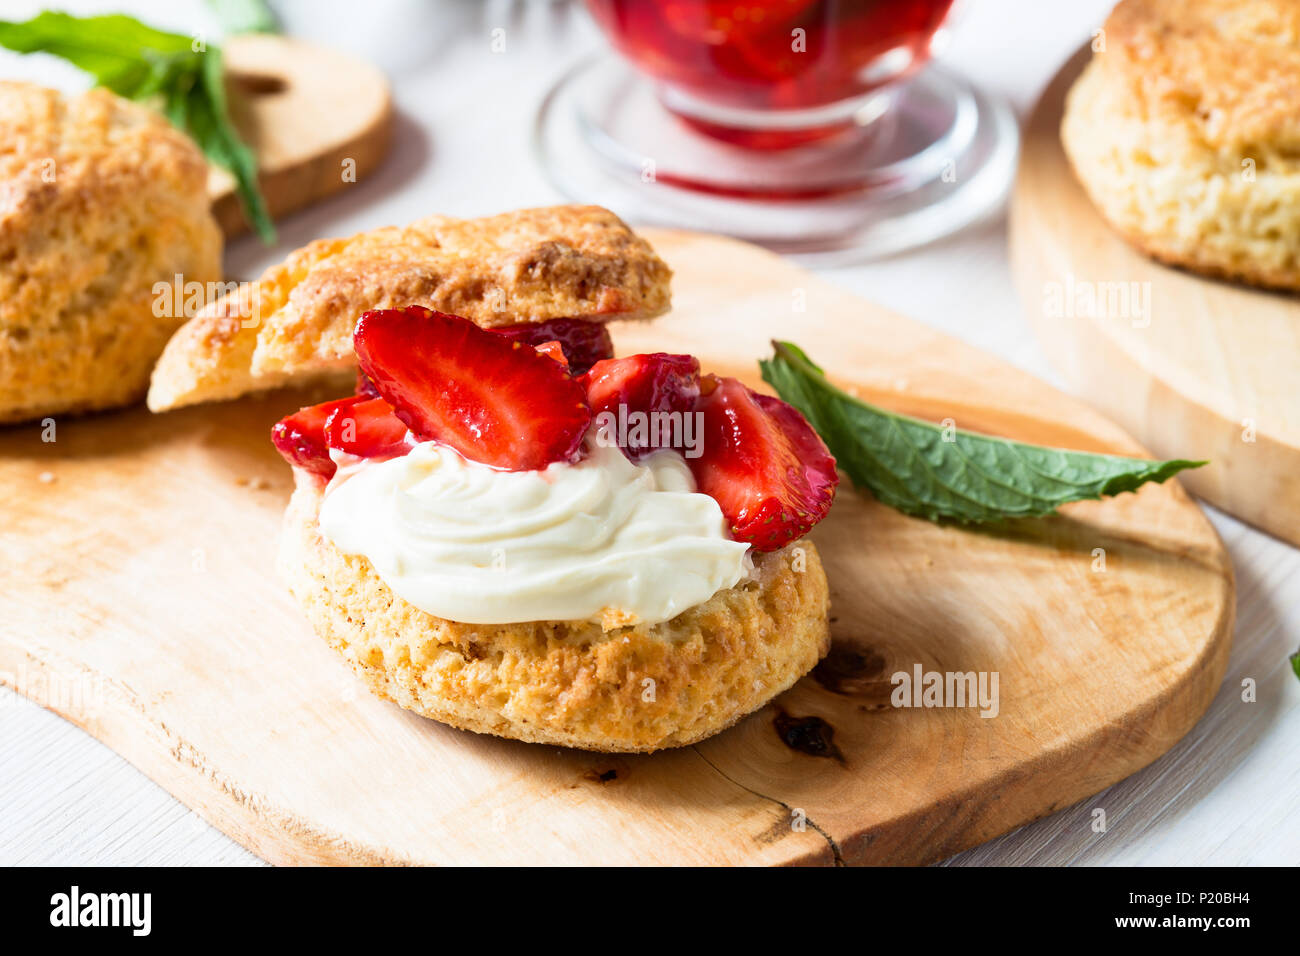 Homemade strawberry shortcake with vanilla whipped cream and berry compote Stock Photo